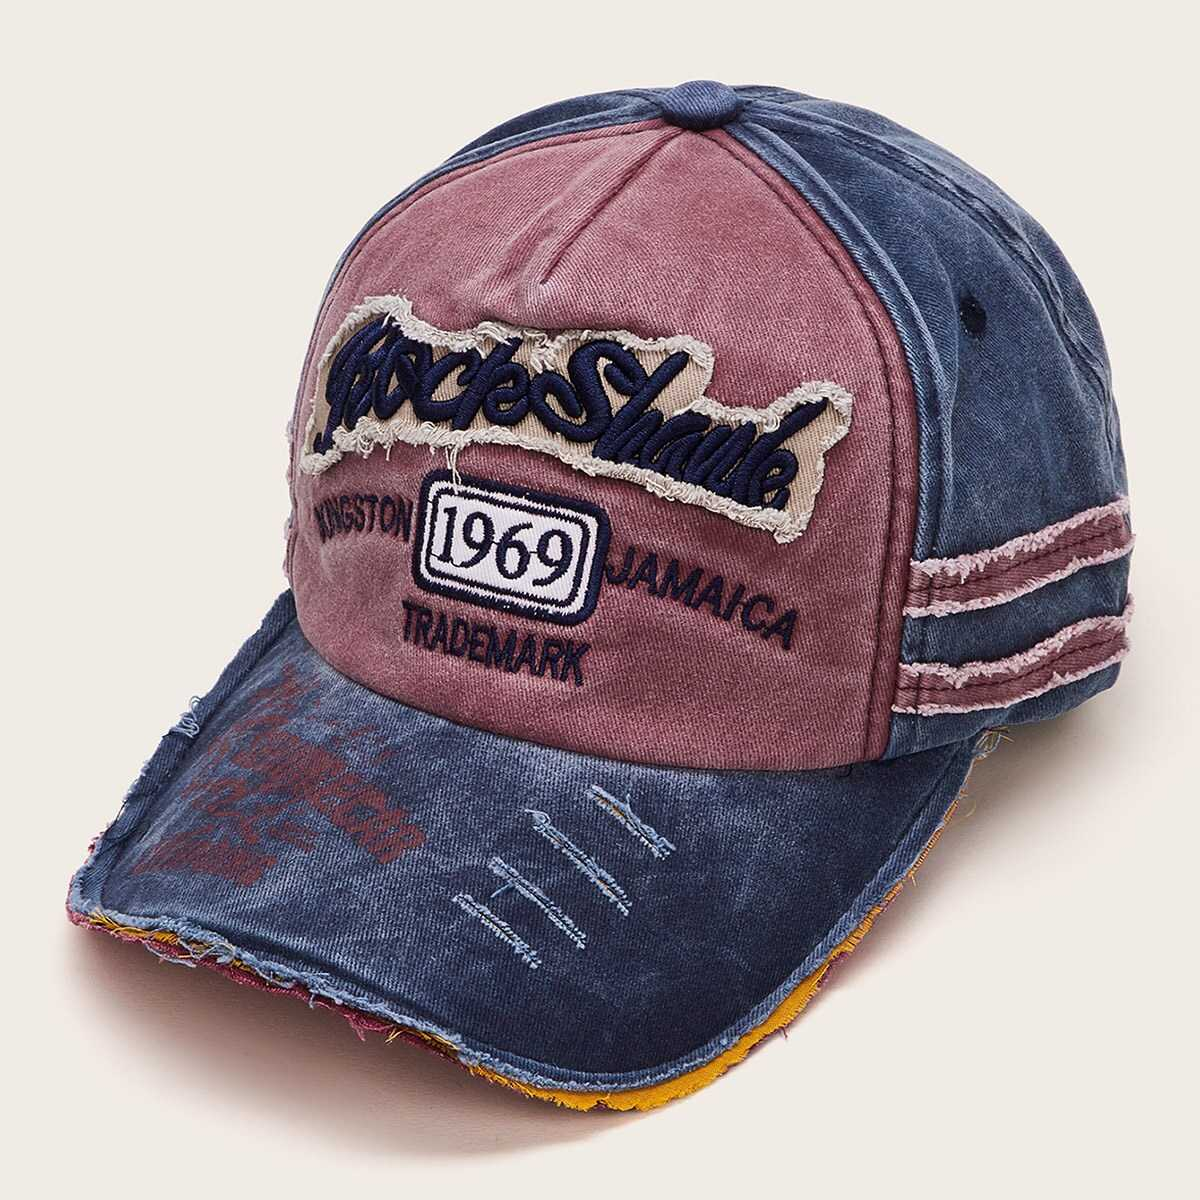 Guys Letter Embroidery Raw Hem Baseball Cap in Multicolor by ROMWE on GOOFASH